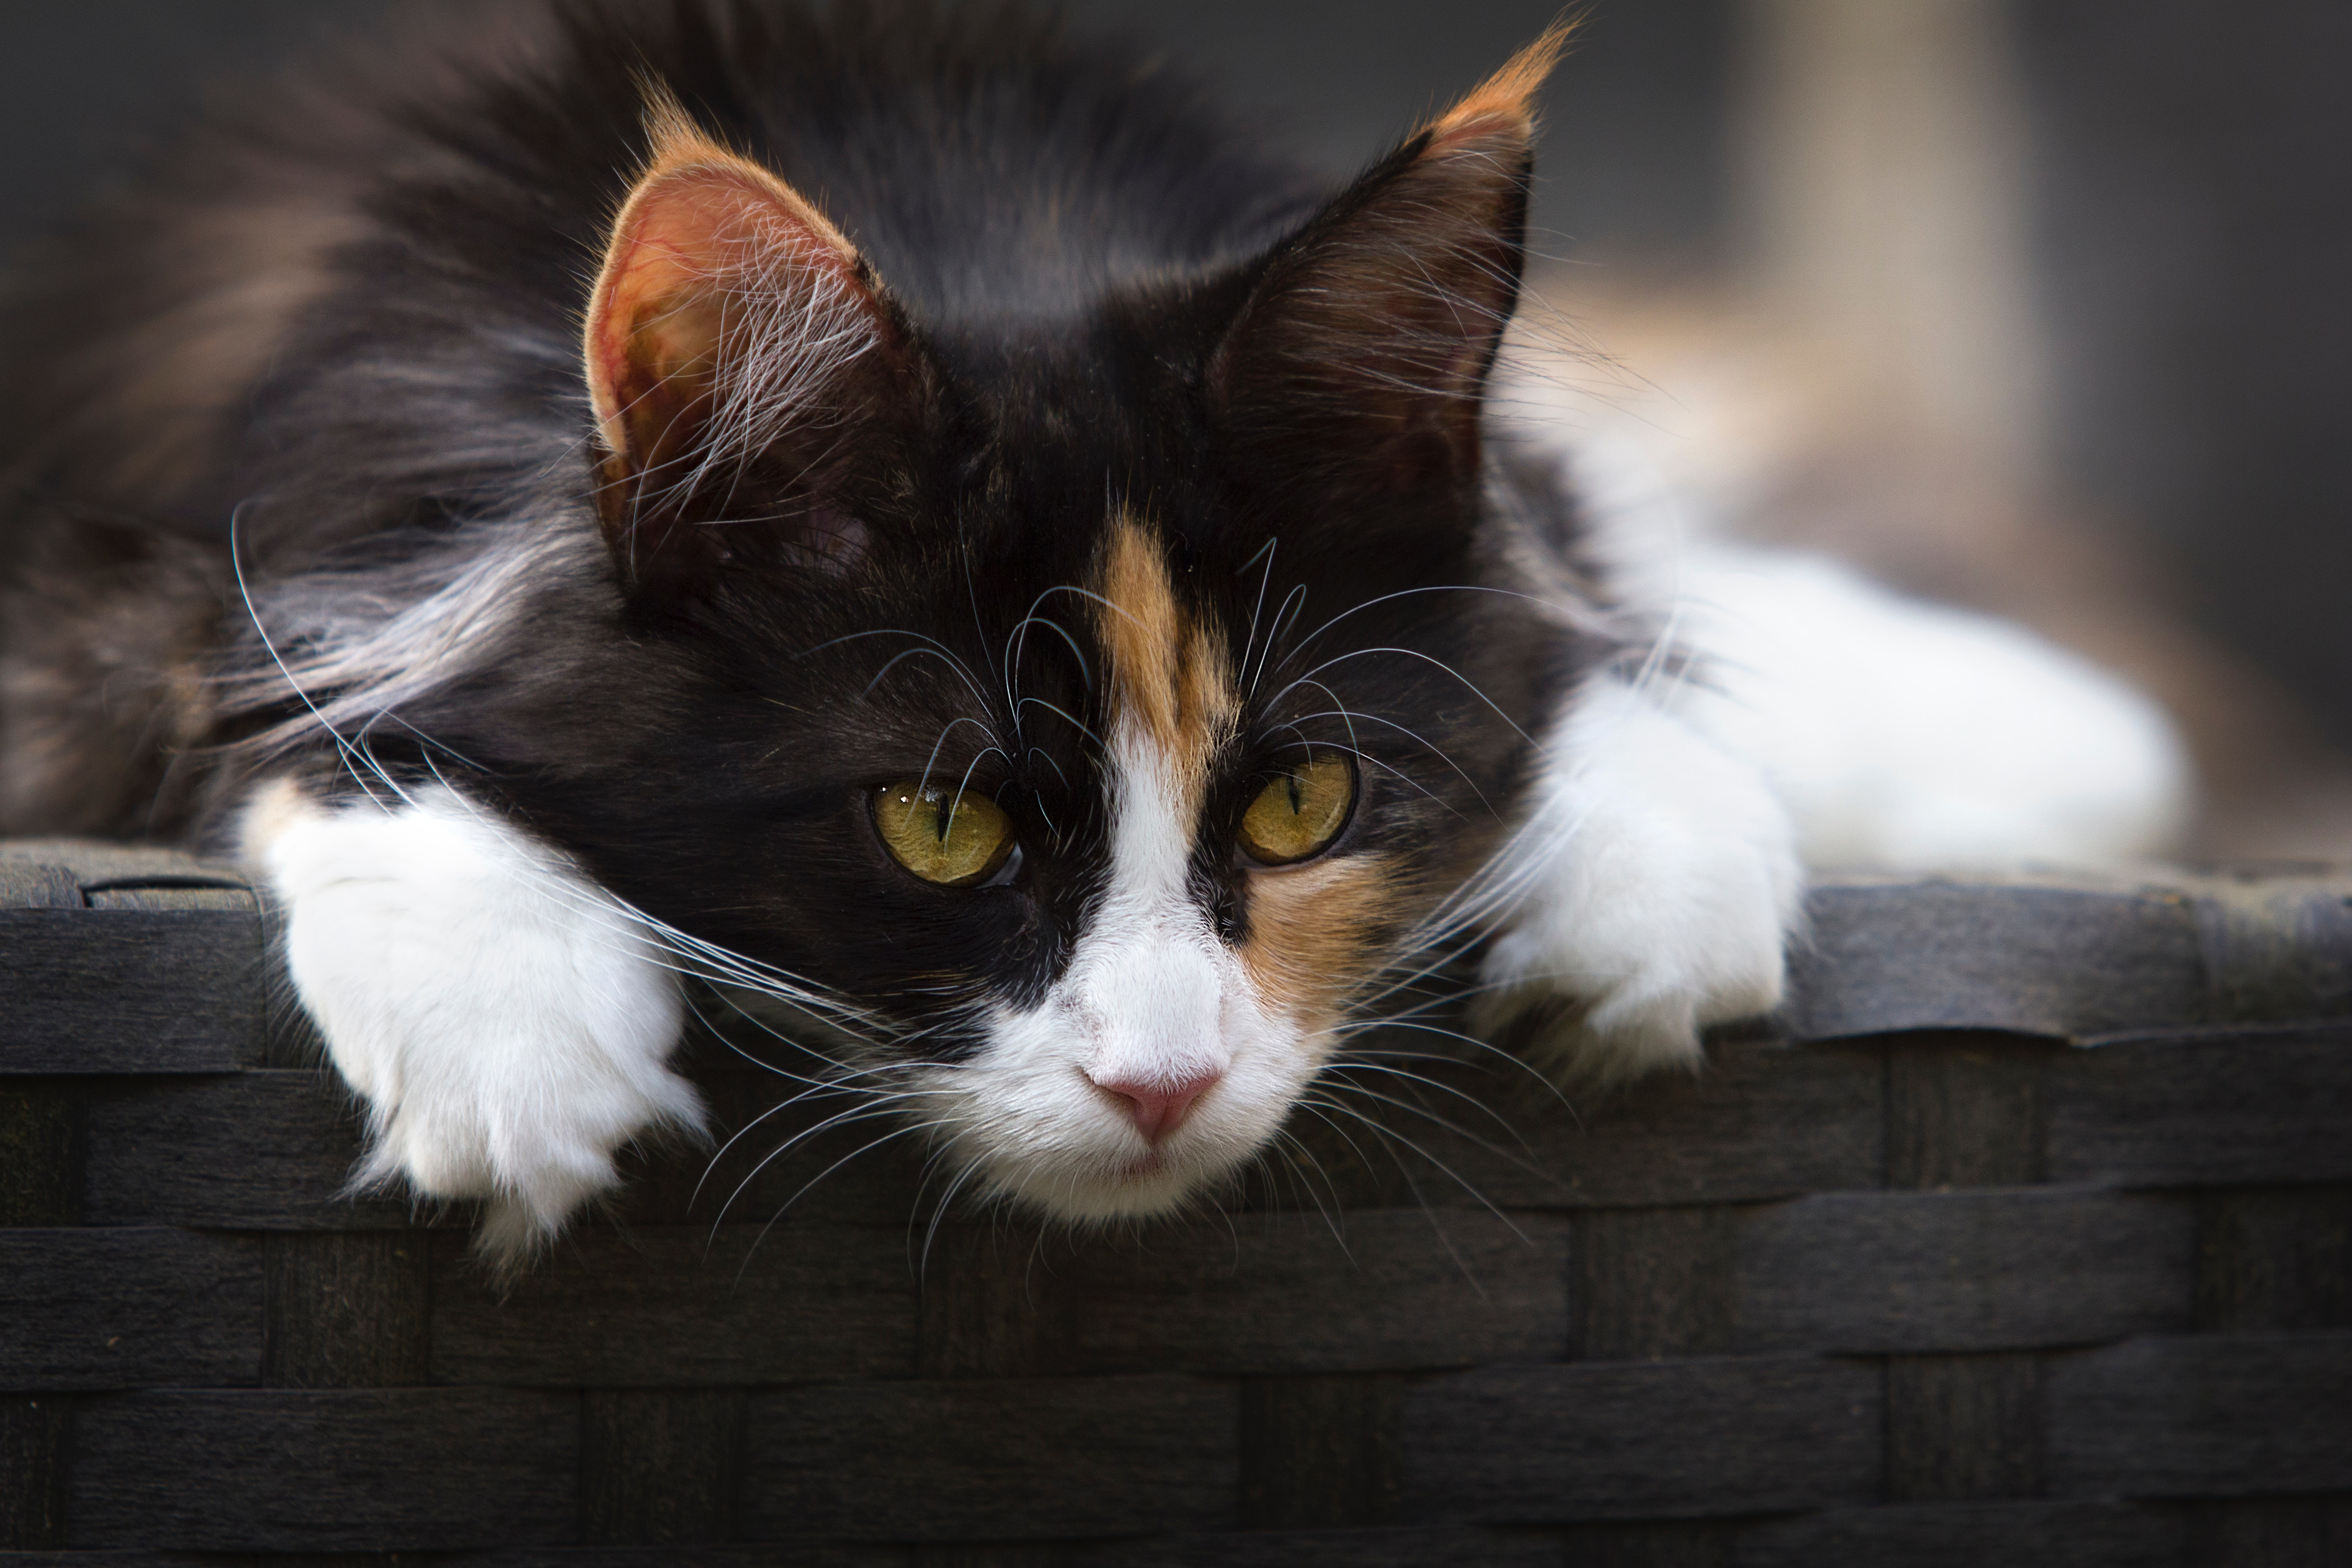 Focus Photo of Calico Cat, Adorable, Head, Whiskers, Whisker, HQ Photo